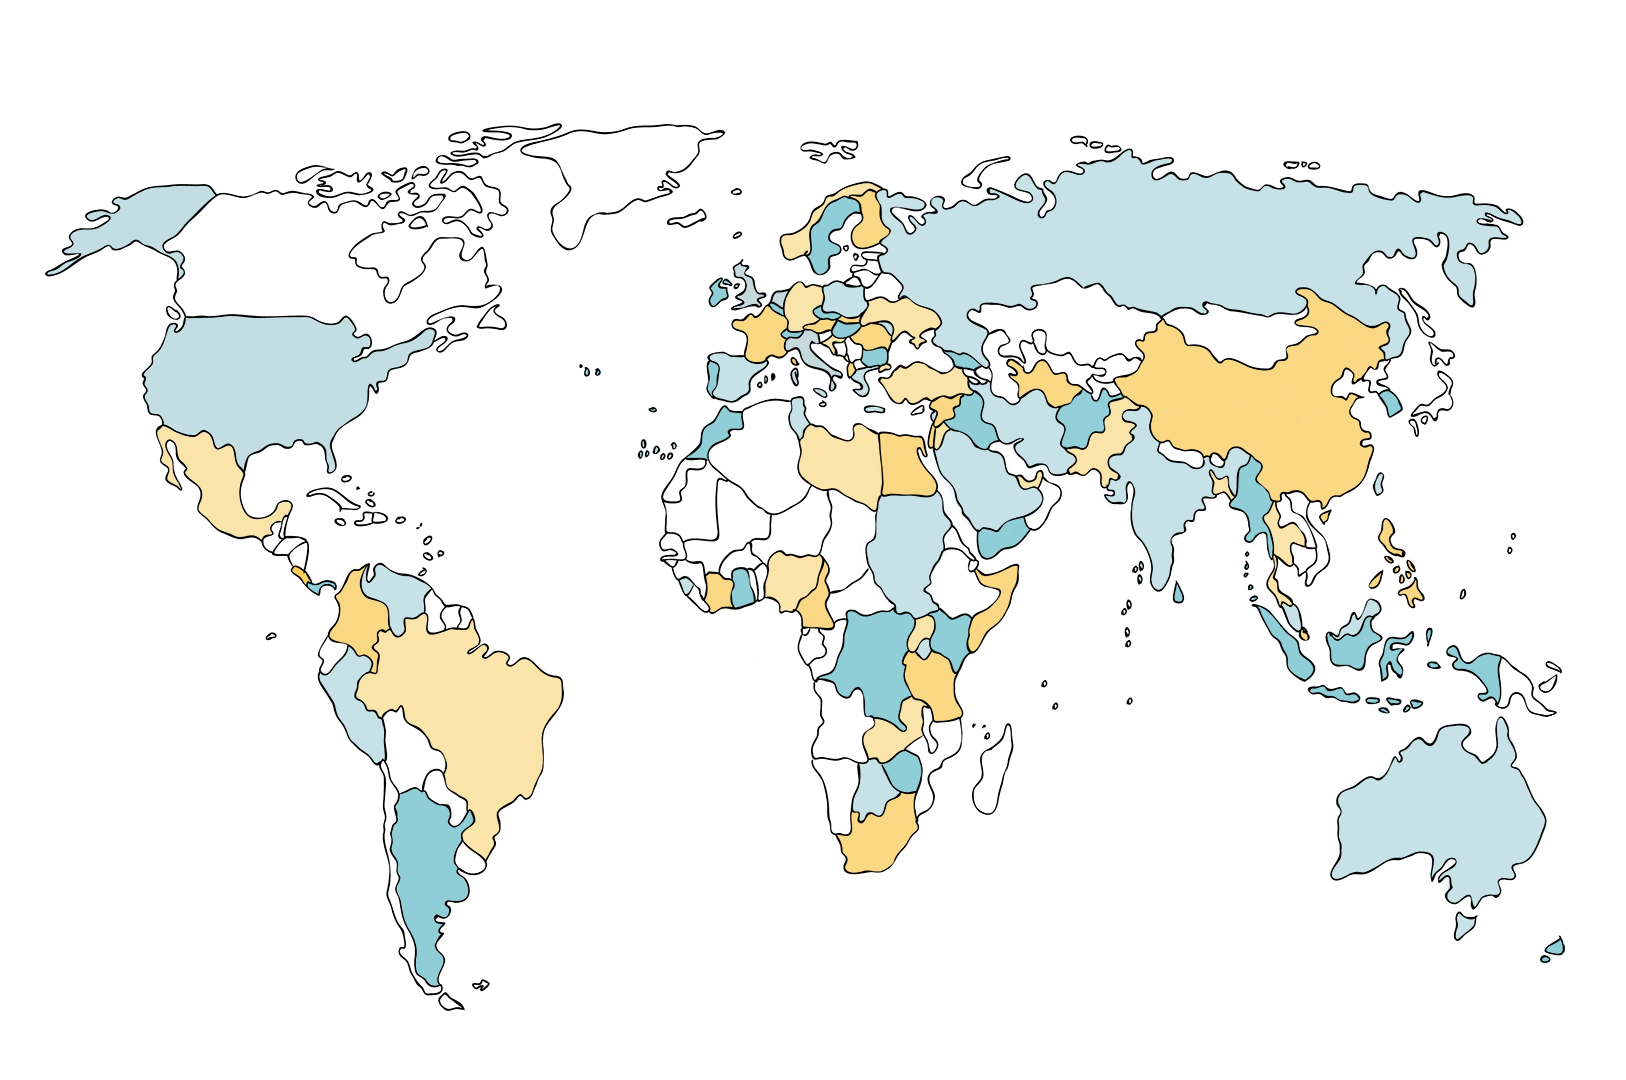 A world map displaying the countries in which the Volunteer Vision platform is actively used by mentors and mentees.